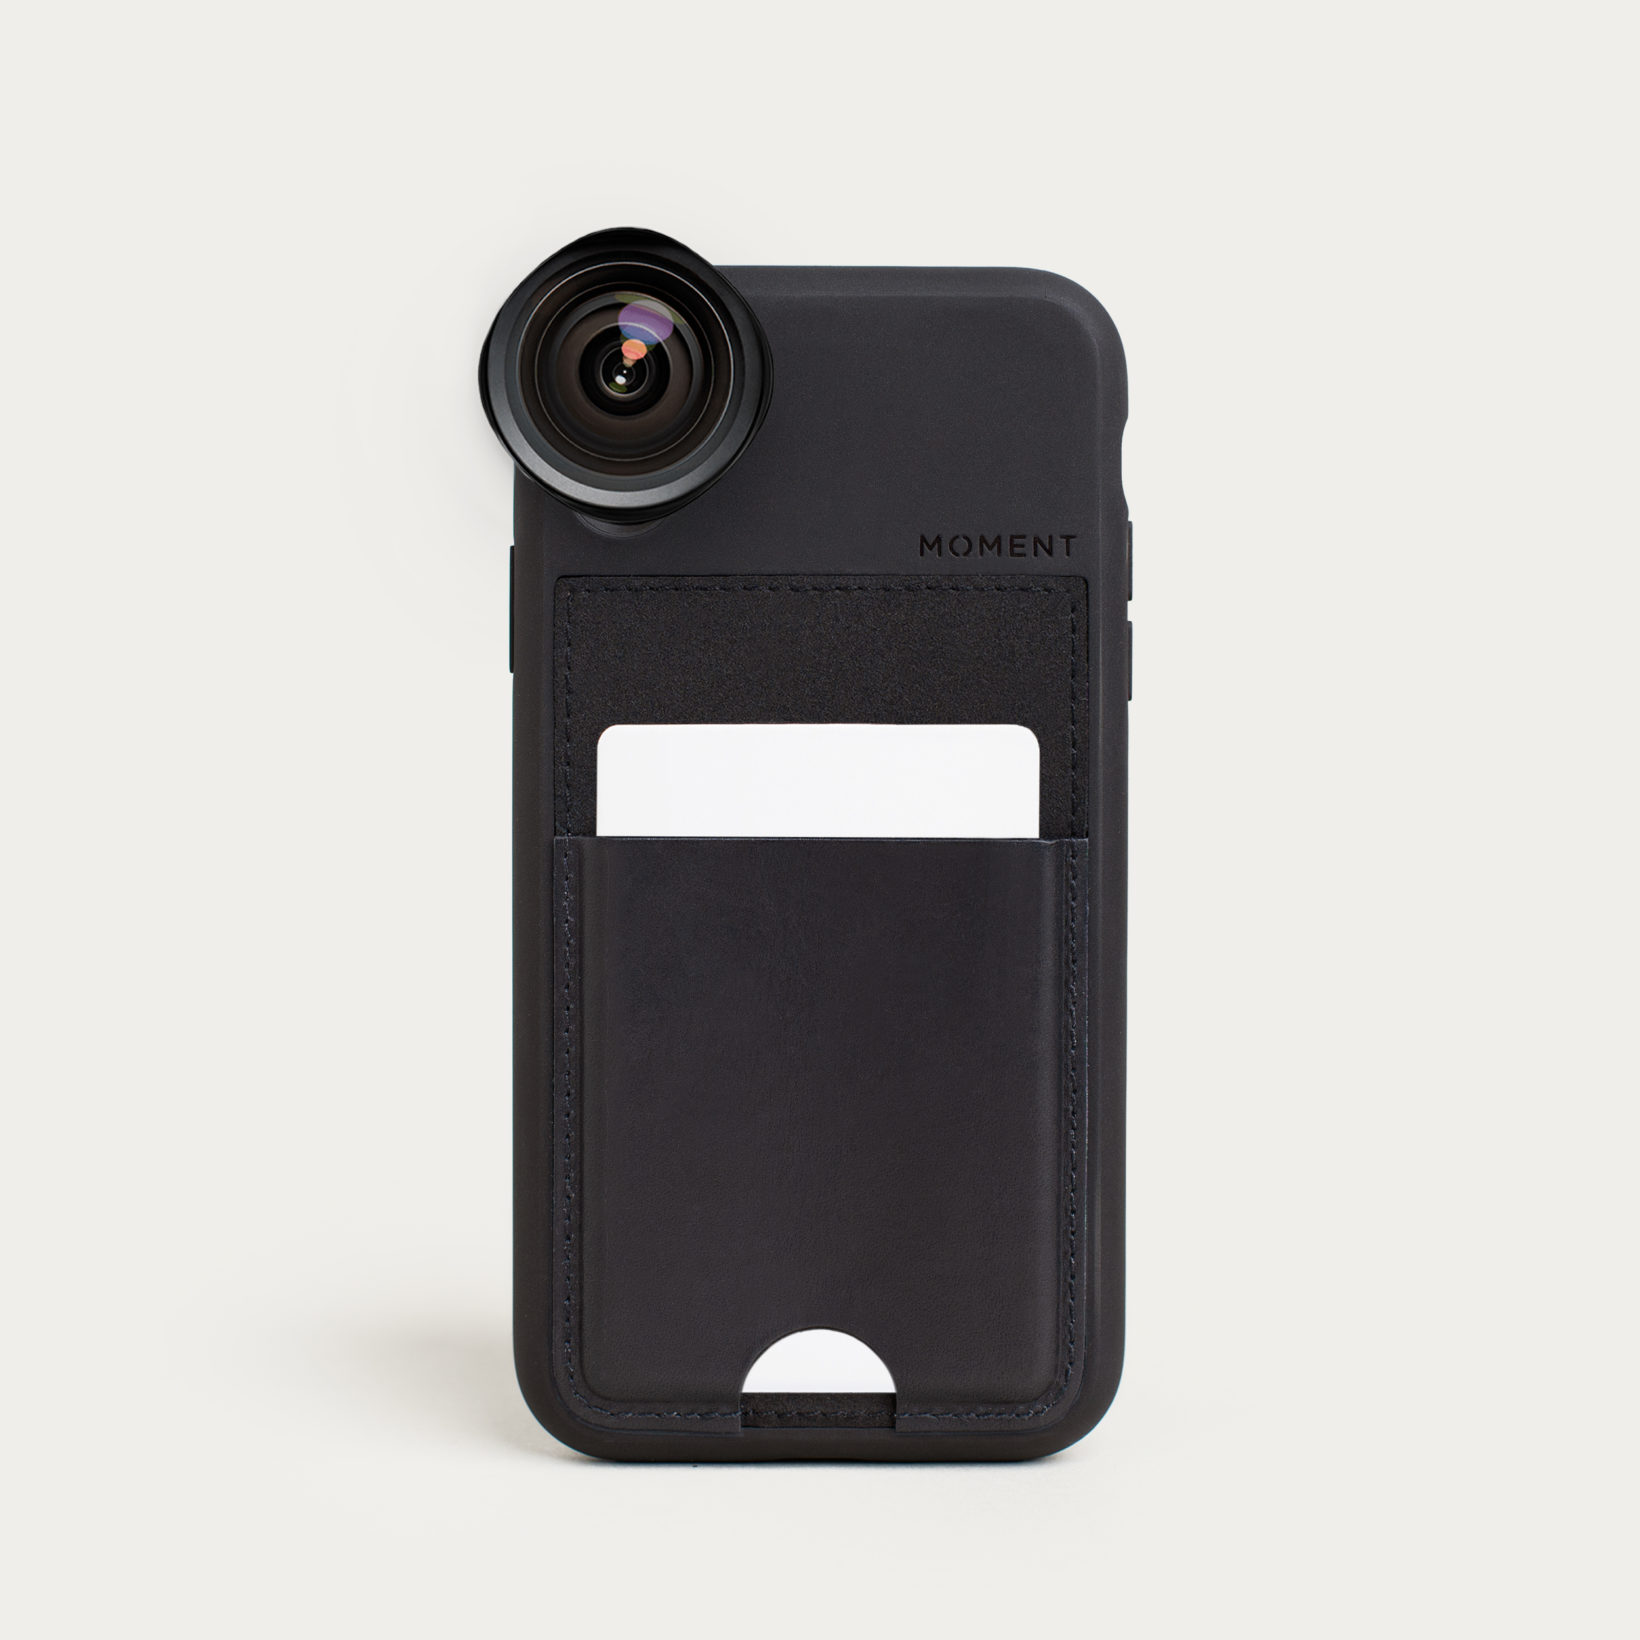 reputable site 08947 0486f Shop All - Cases, Lenses, Carry, Video, Power - Moment